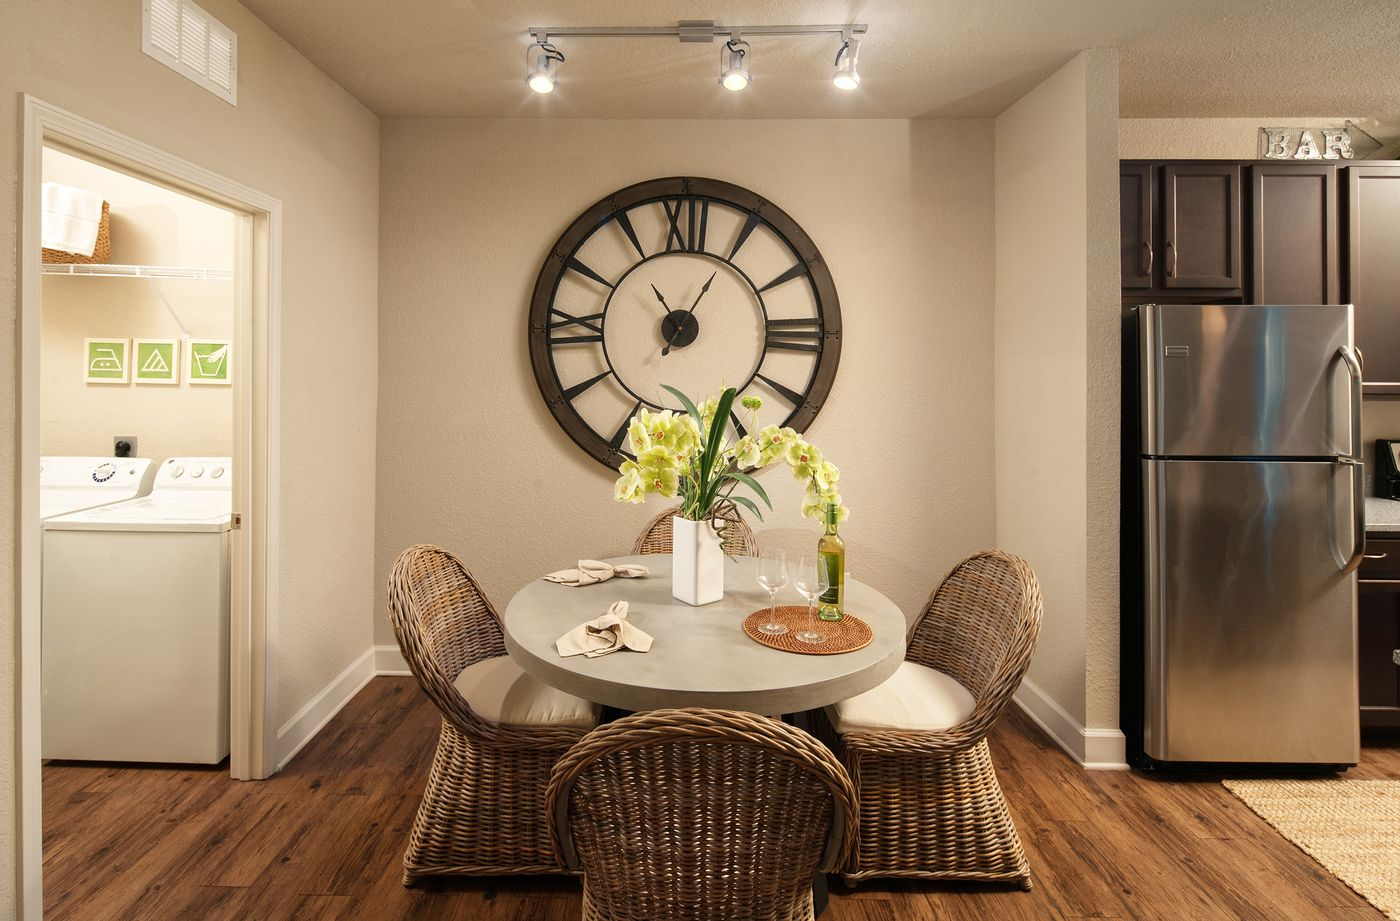 Furnished apartment dining room with laundry room and kitchen on either side, wood flooring and track lighting